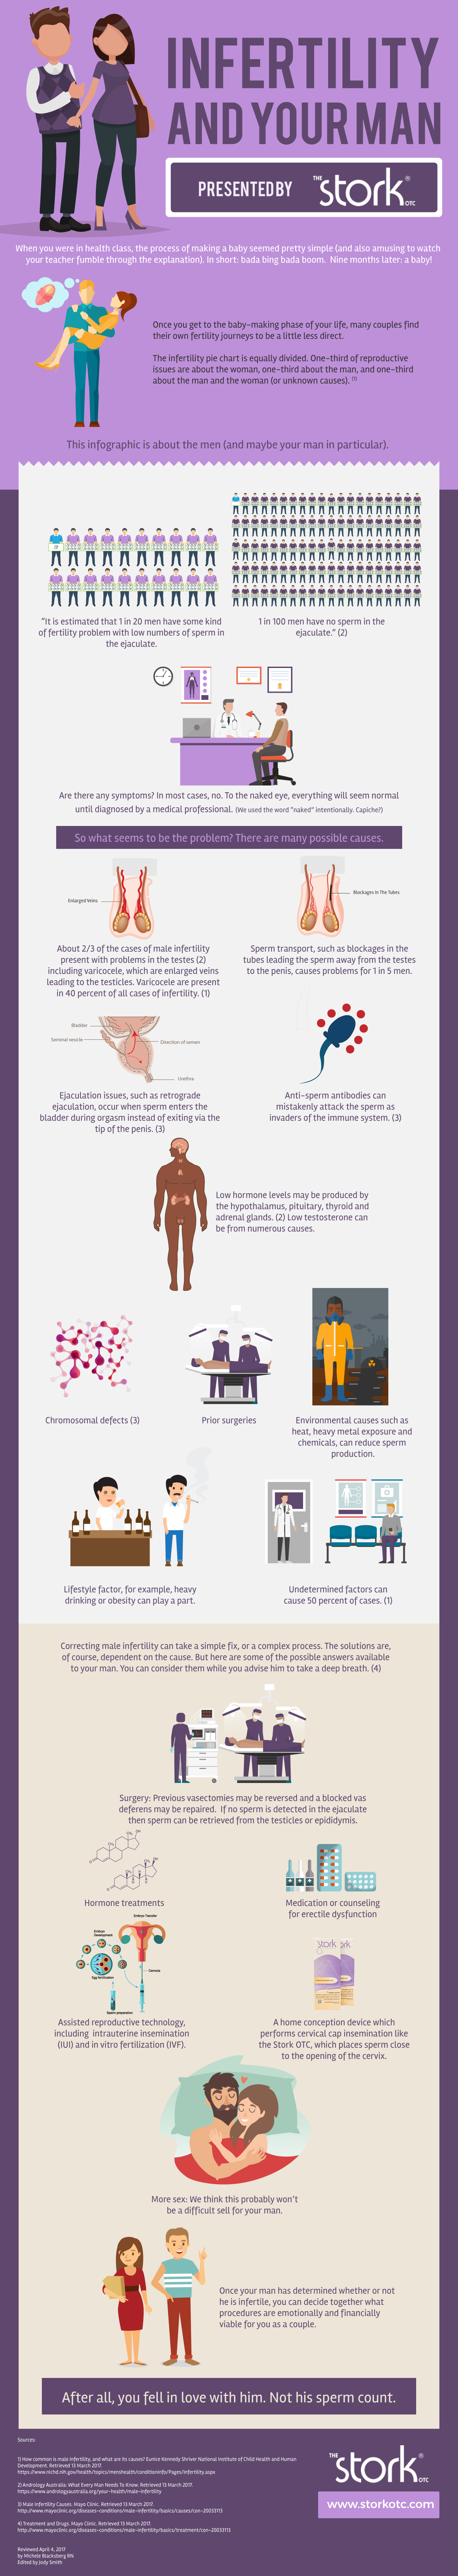 Infographic infertility and your man